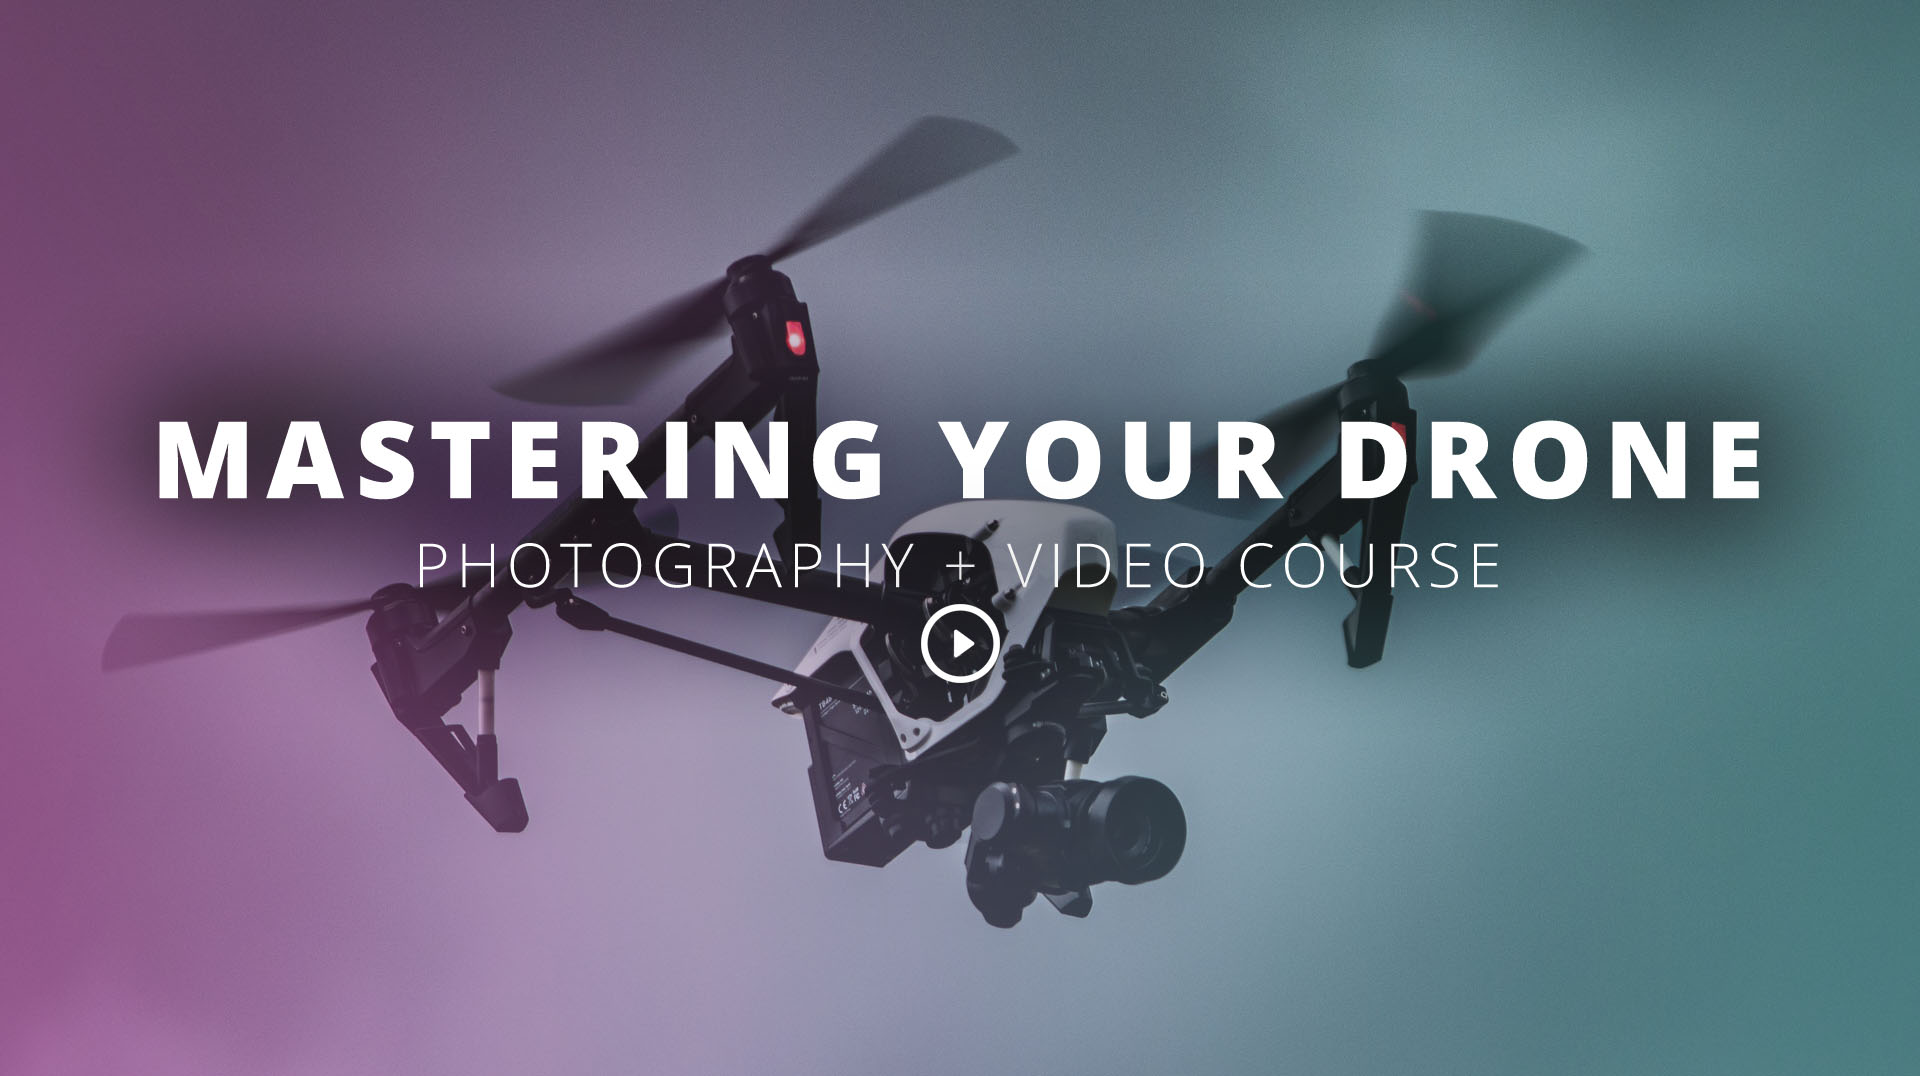 drone-video-course-sleeklens-aerial-photos-videos-photography-tutorial